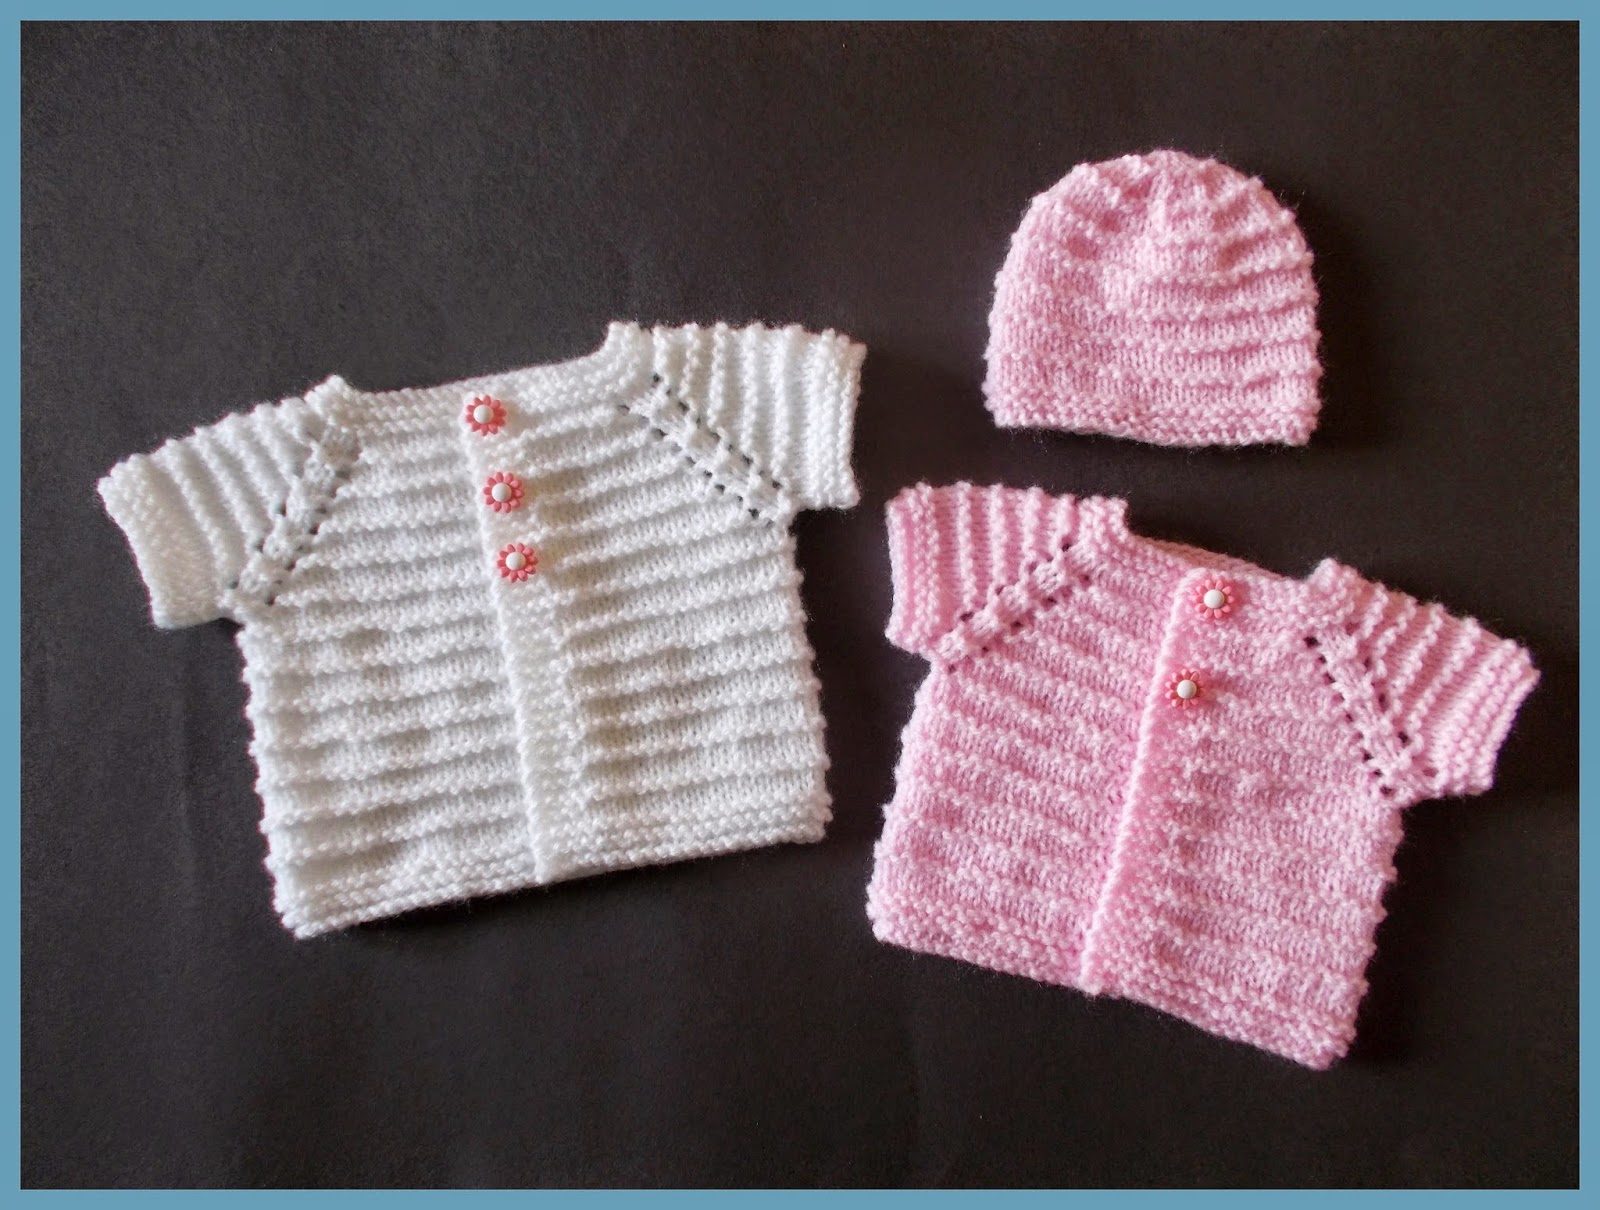 Mariannas lazy daisy days premature baby kinzie baby top and hat premature baby kinzie baby top and hat bankloansurffo Choice Image